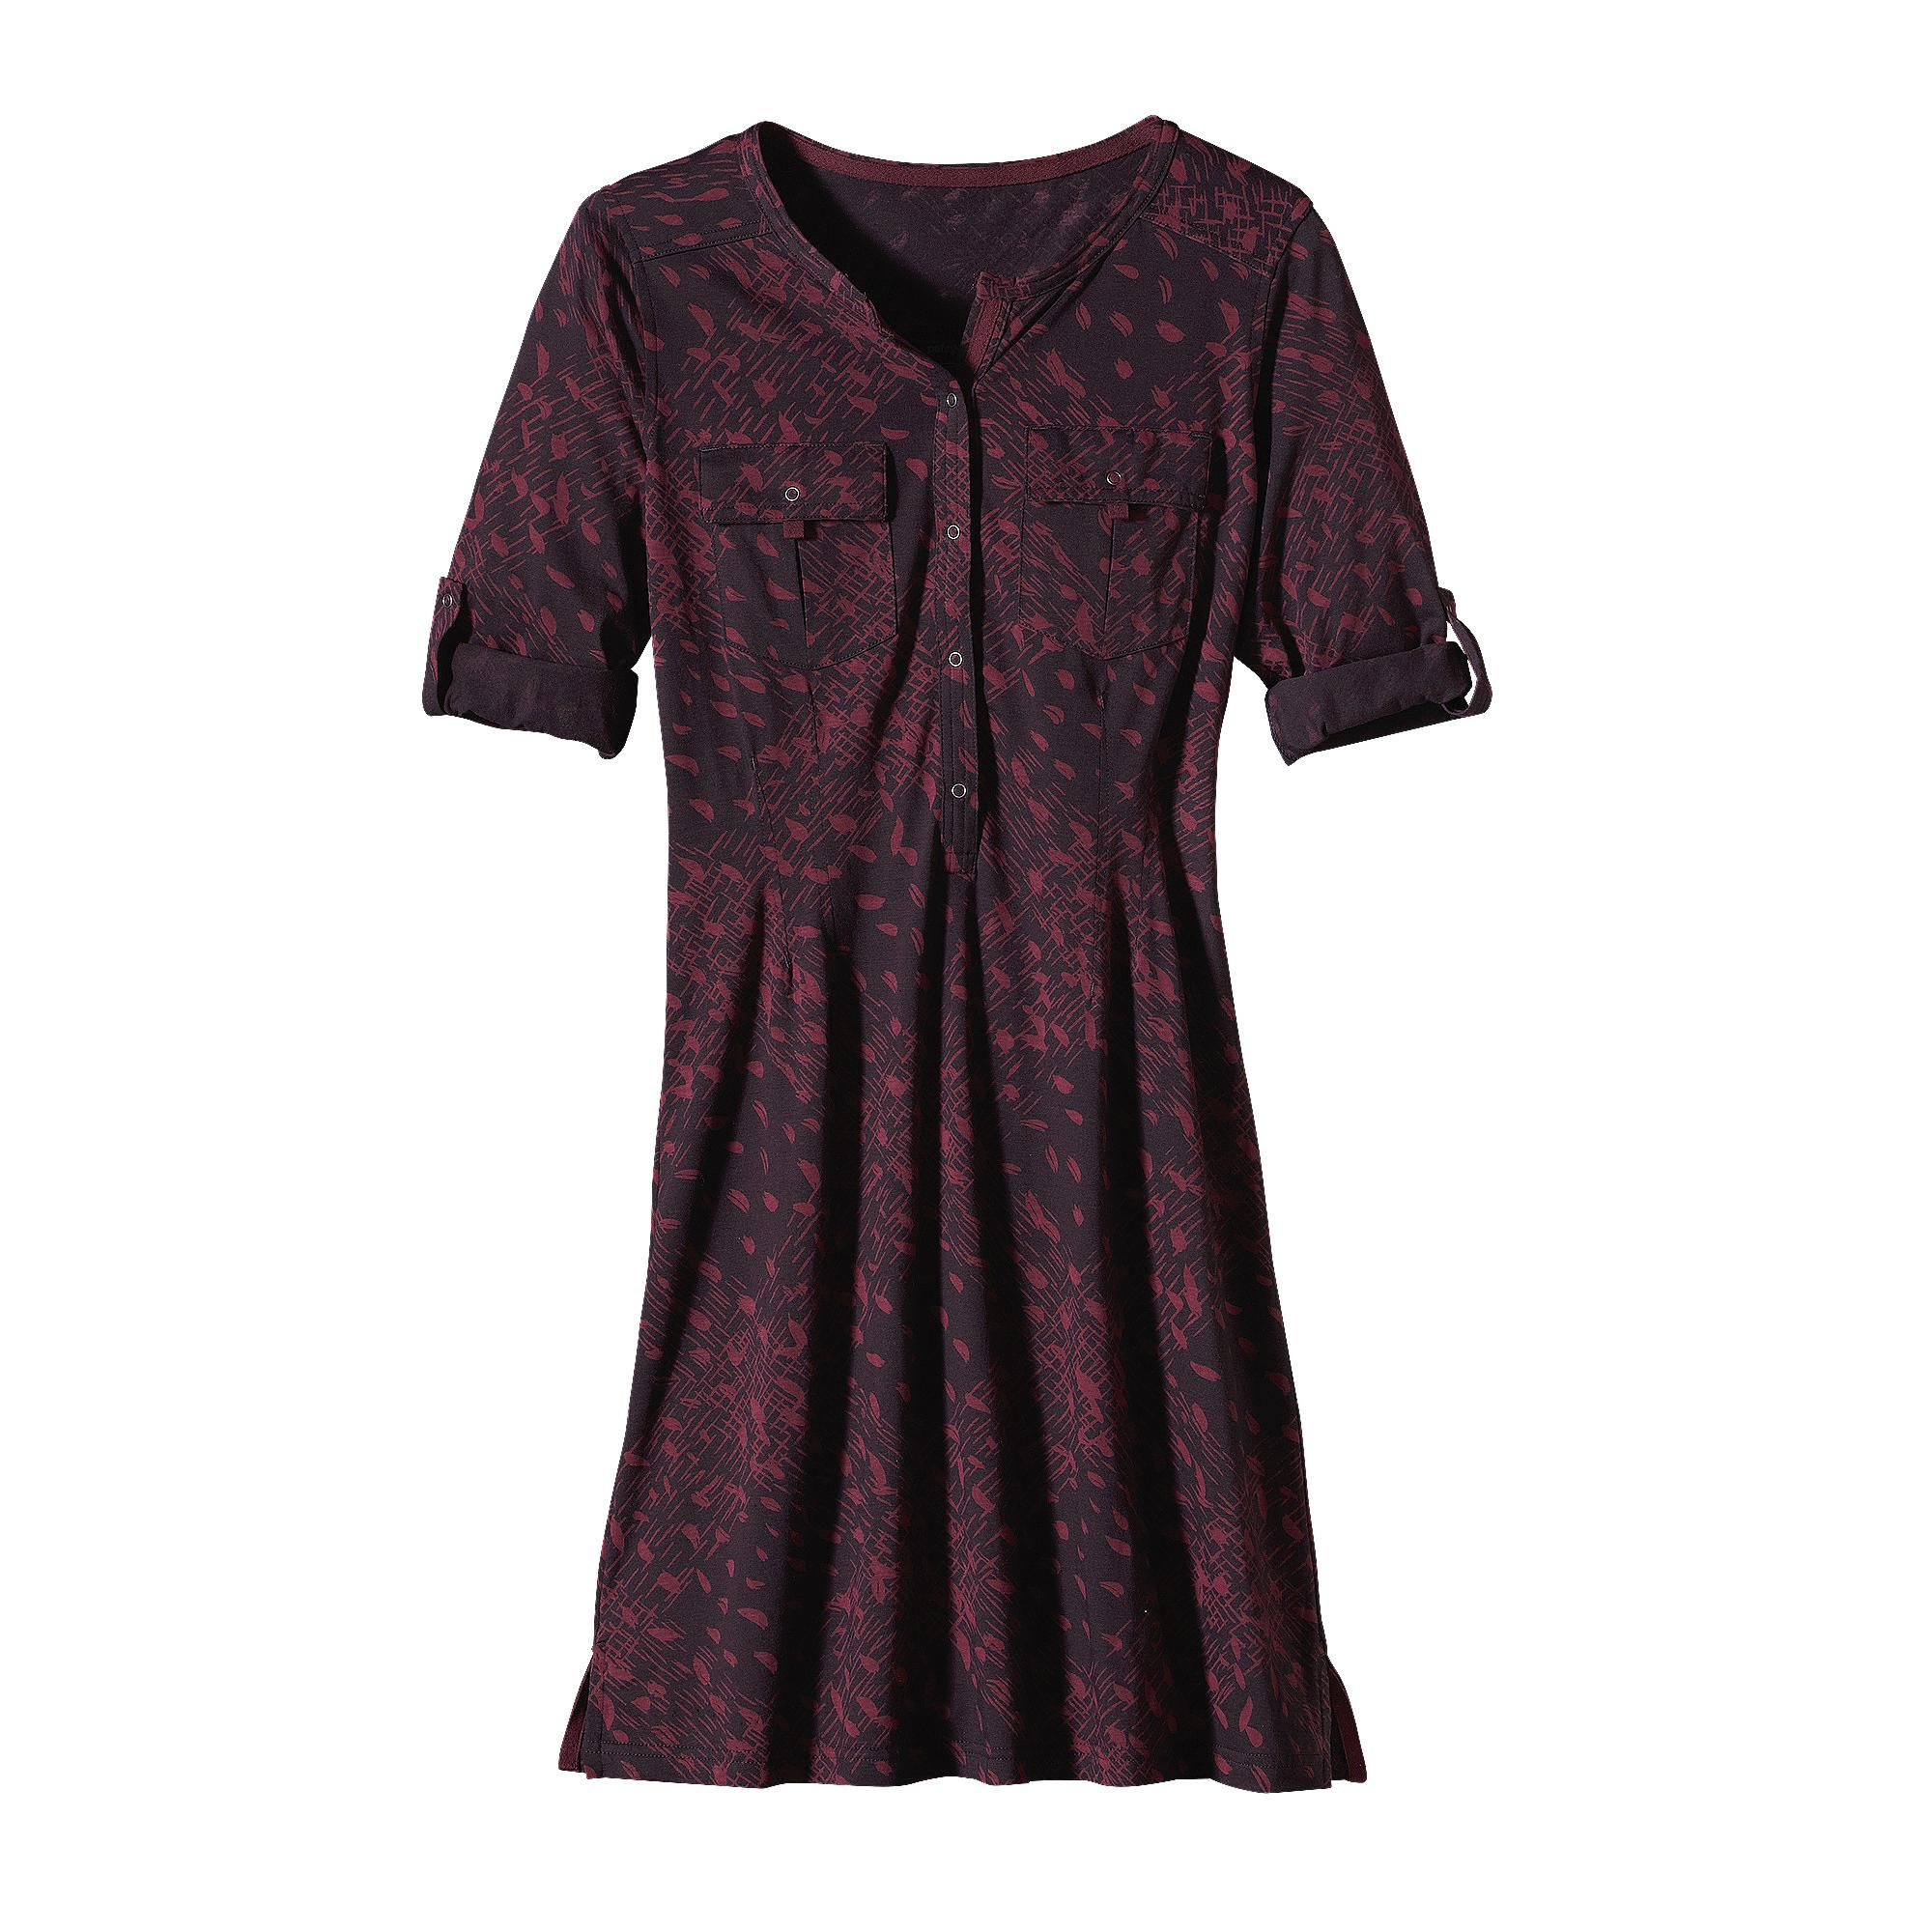 8827d556f Named after a secluded, lovely beach, the Patagonia Women's Kamala Henley  Dress is made of an organic cotton and Tencel® lyocell blend. Check it out.